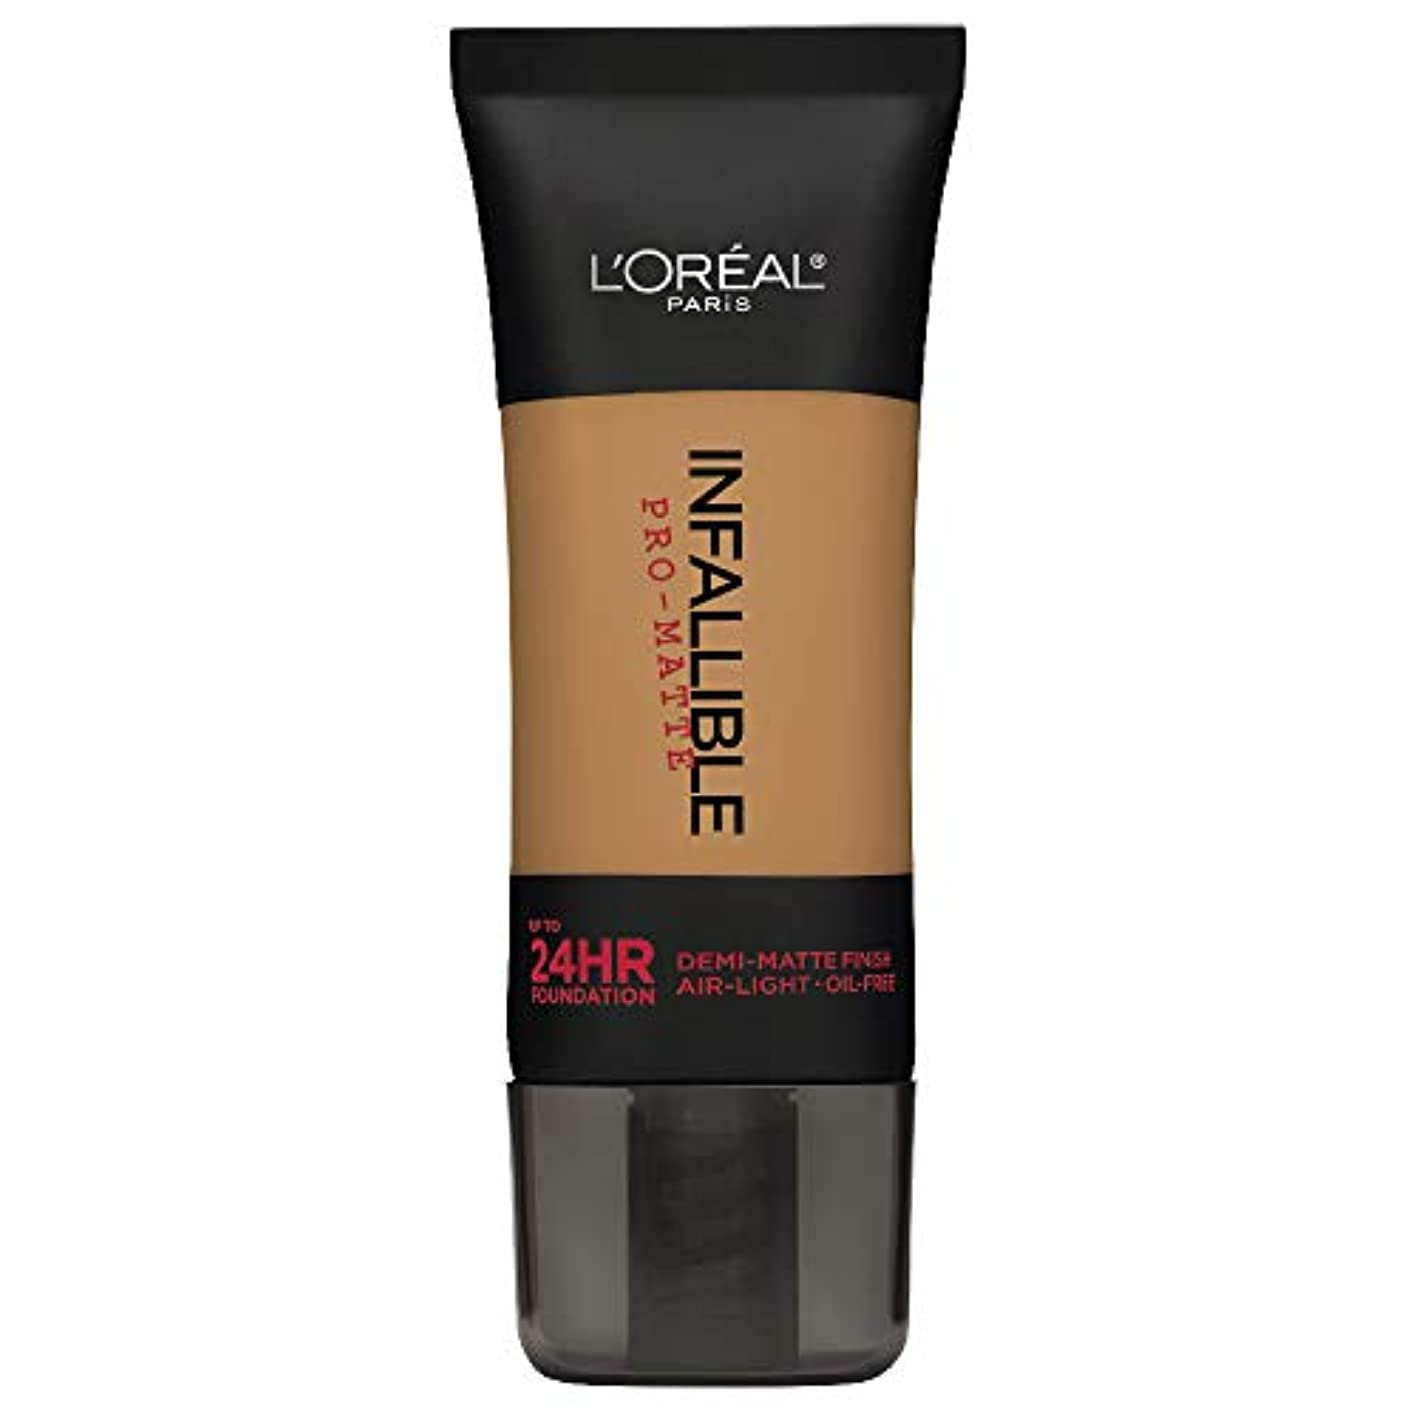 ナイトスポット本を読むペンフレンドL'Oreal Paris Infallible Pro-Matte Foundation Makeup, 108 Caramel Beige, 1 fl. oz[並行輸入品]